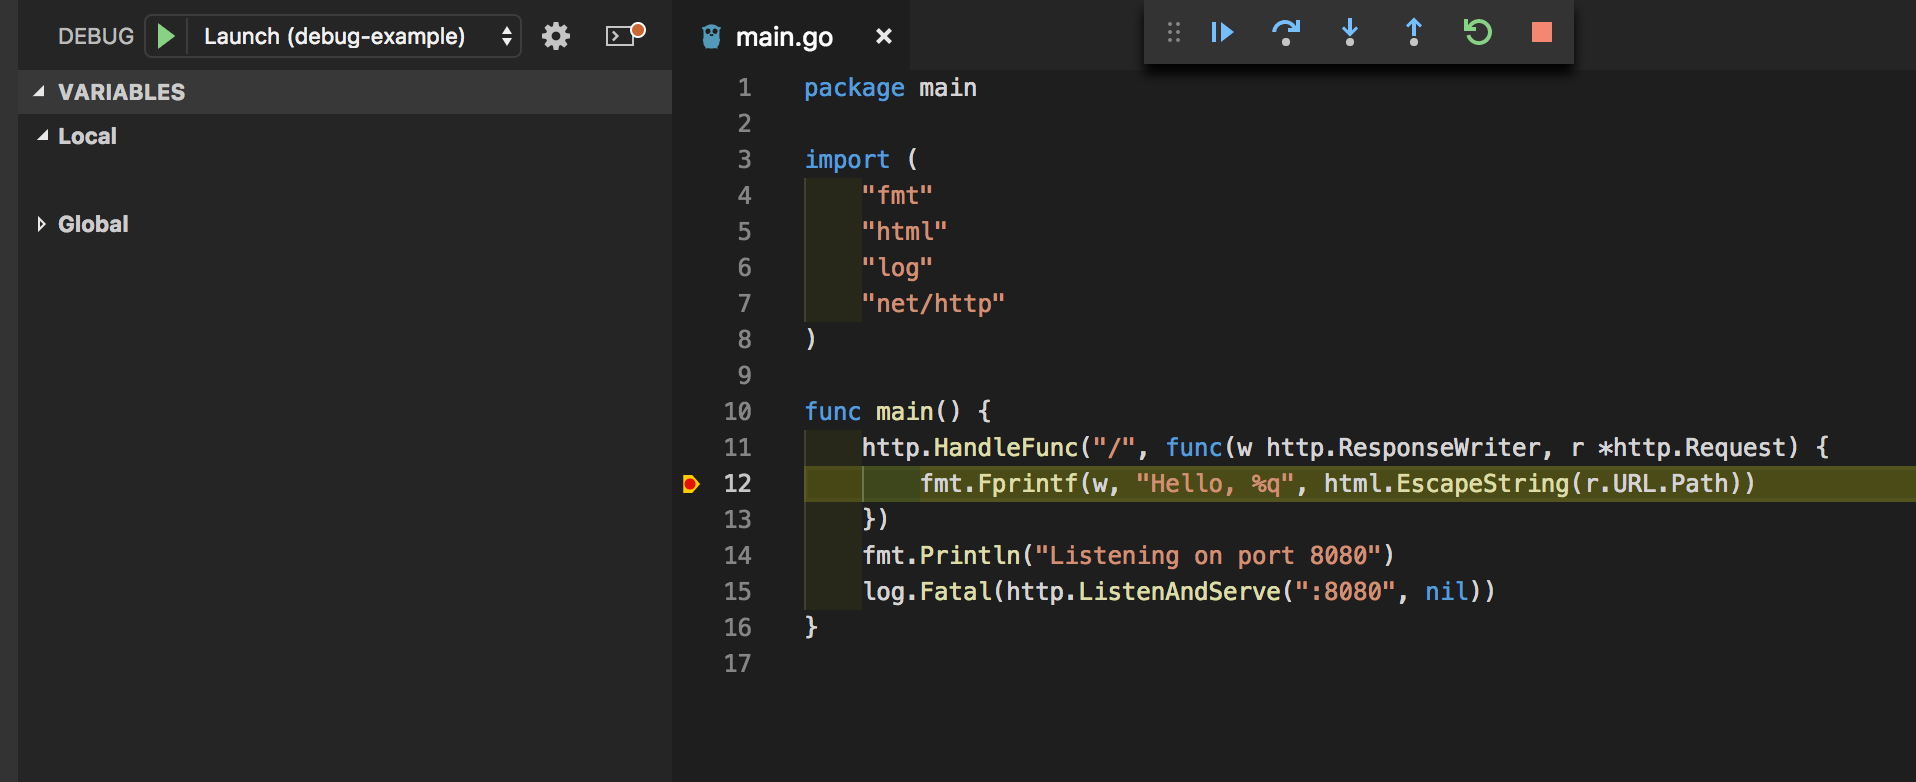 How to debug a running Go app with VSCode - average-coder